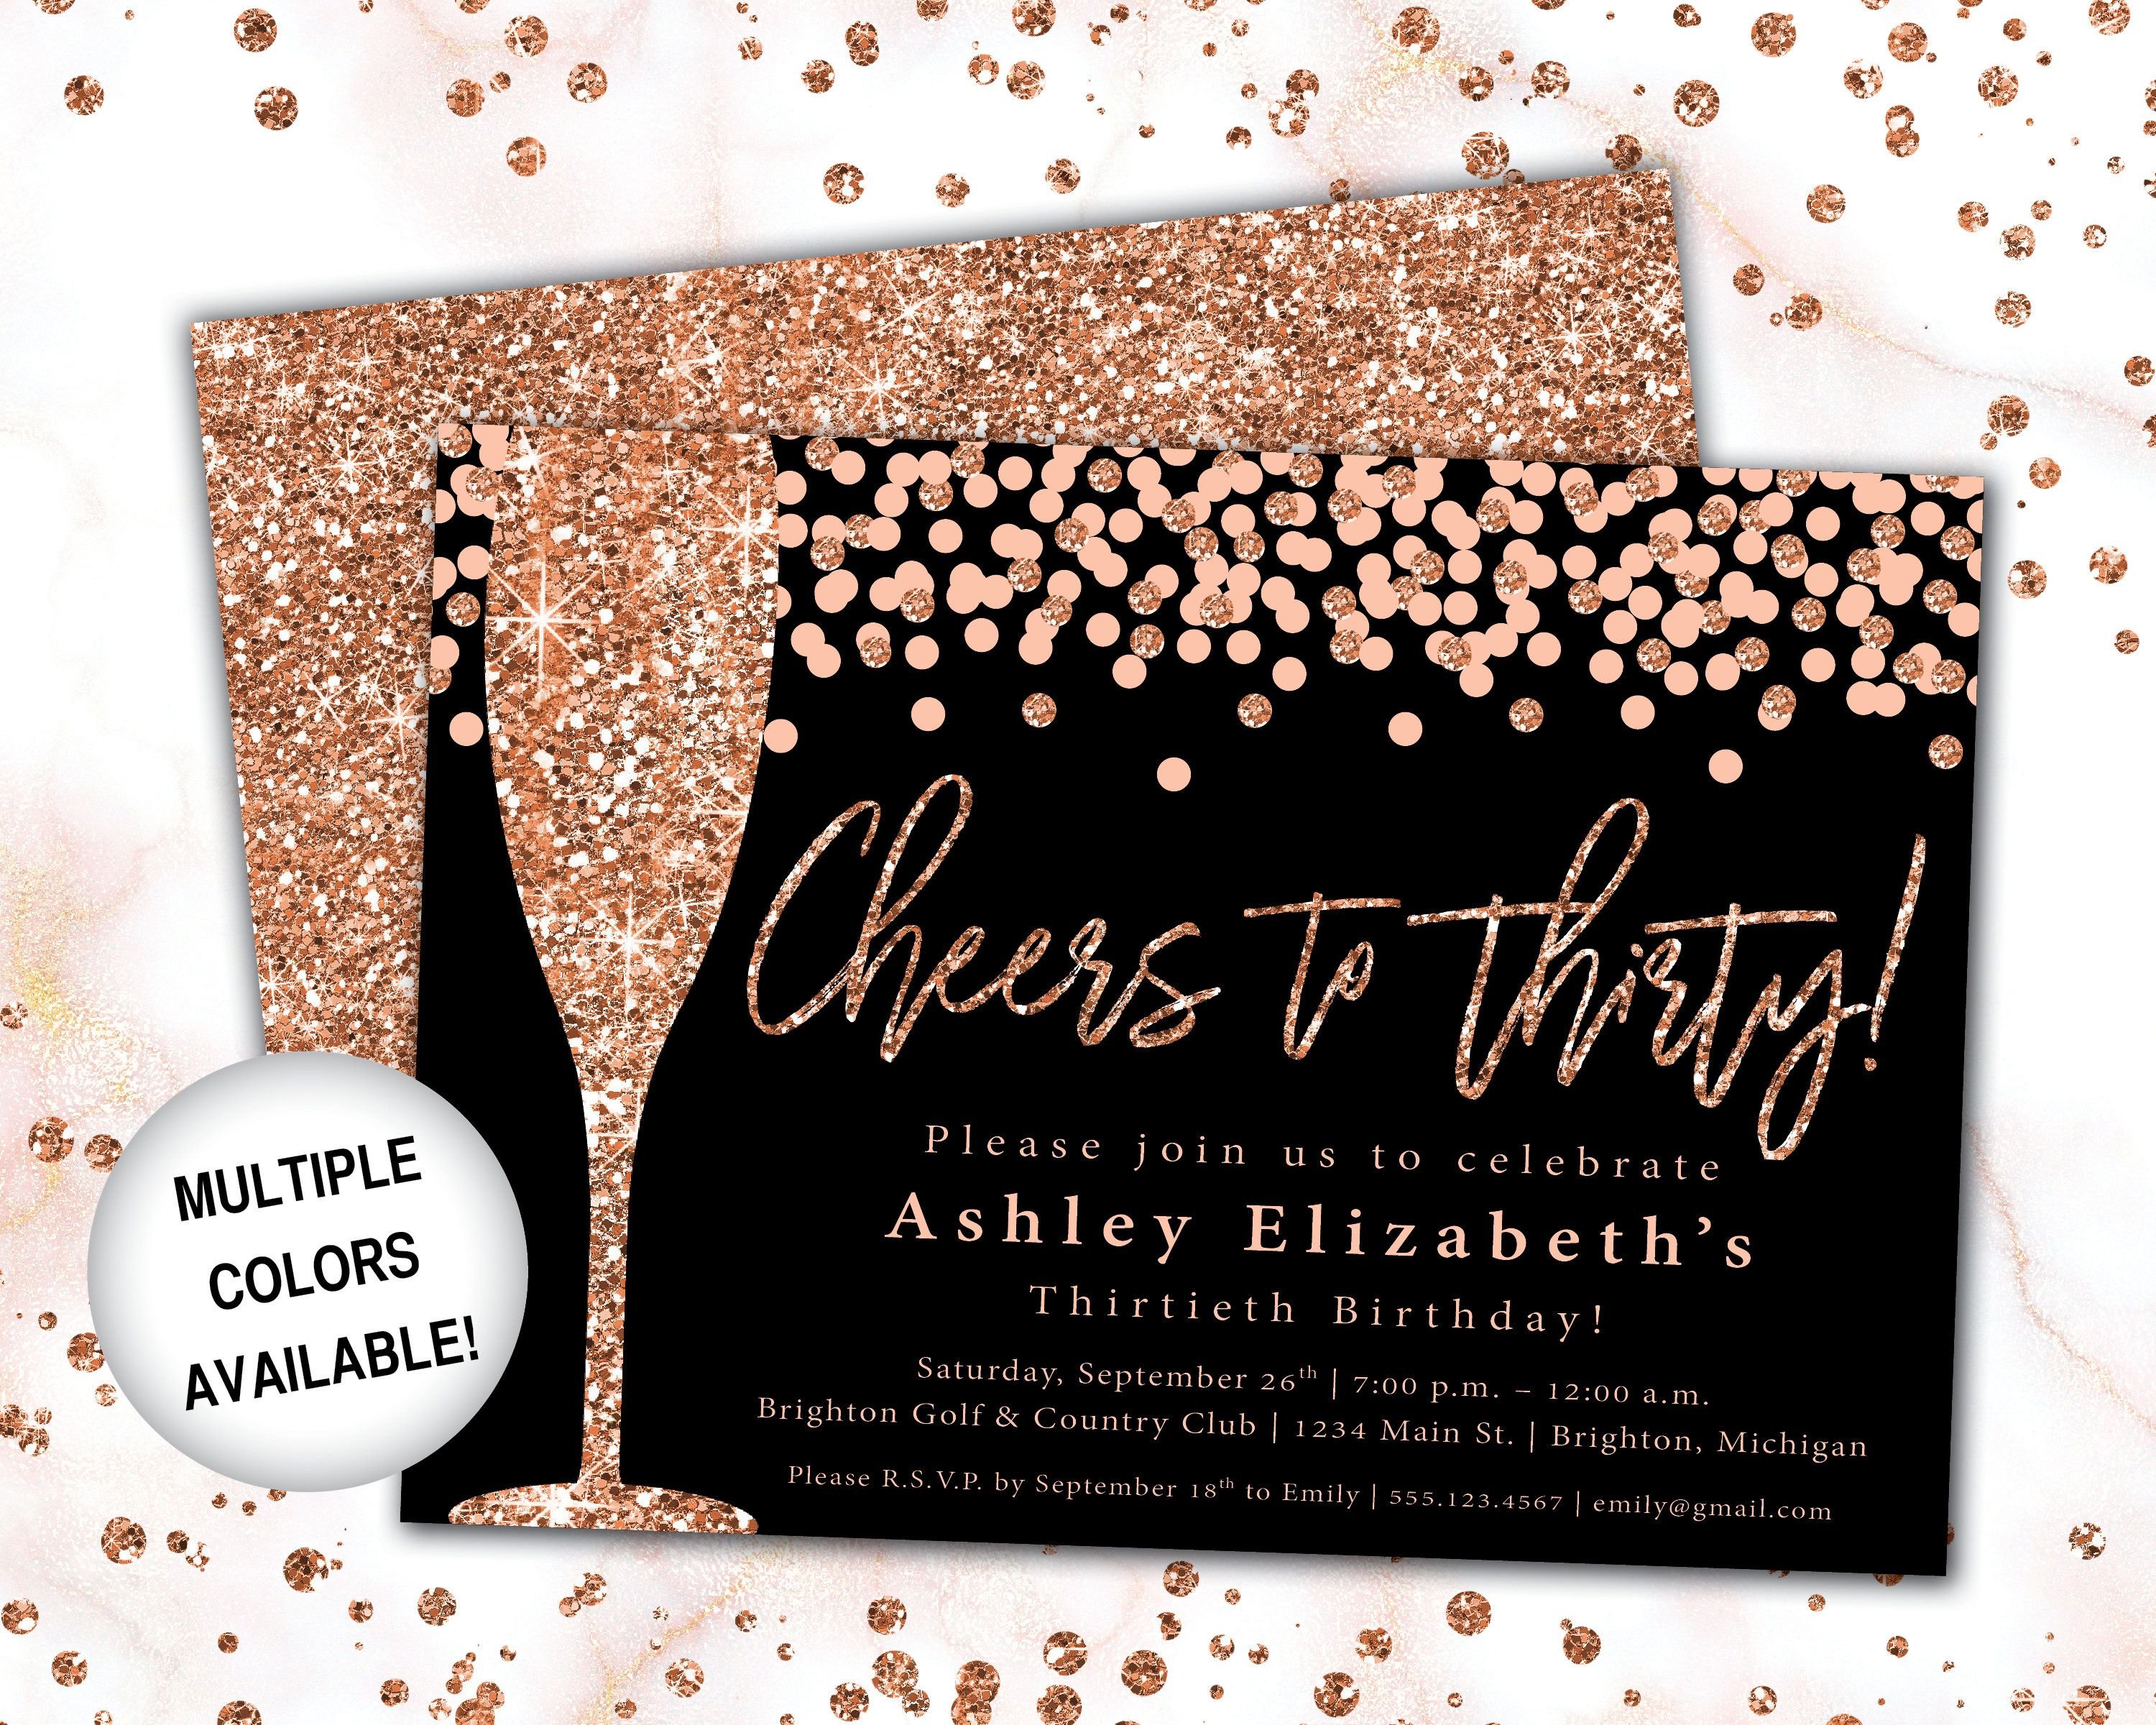 Cheers To 30 Invitation Rose Gold Champagne 30th Birthday Etsy In 2021 Rose Gold Invitations 30th Birthday Invitations 21st Birthday Invitations